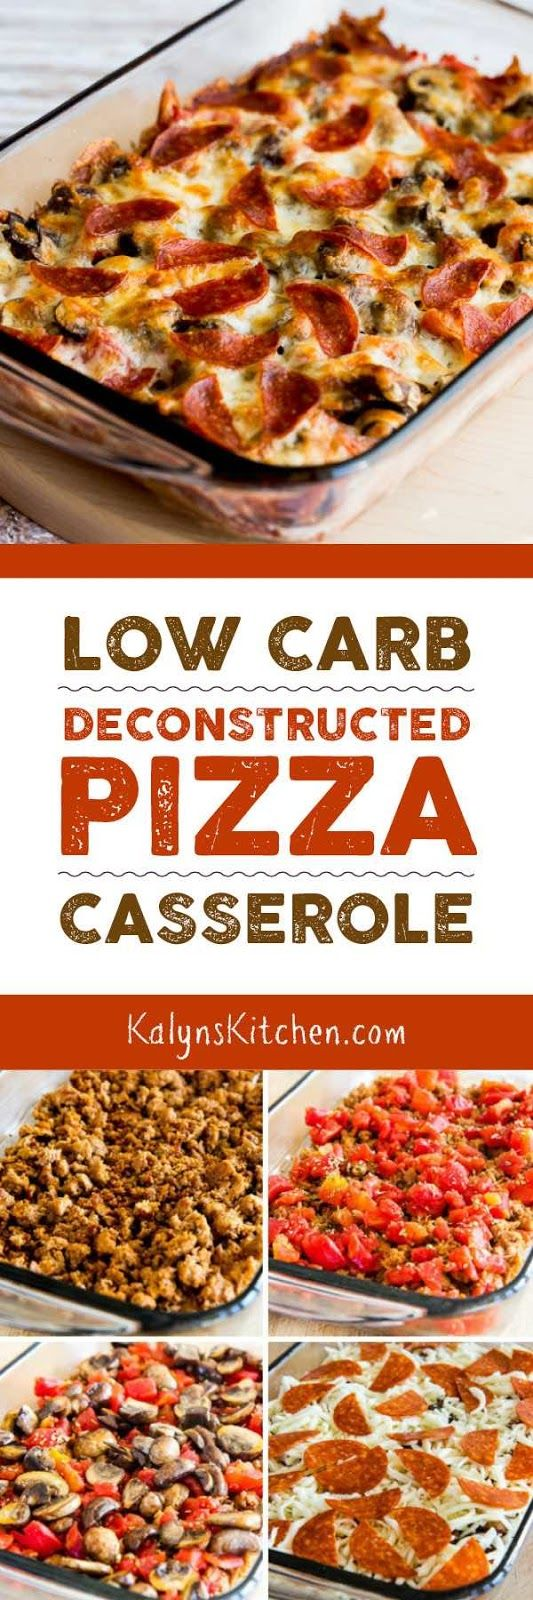 If you're trying to get back on track with carb-conscious eating AND looking for dinner ideas the family will eat, this Low-Carb Deconstructed Pizza Casserole is delicious and it's the perfect low-carb comfort food! This tasty recipe is also gluten-free and Keto. PIN NOW so you'll have it for January! [found on KalynsKitchen.com] #LowCarbPizzaCasserole #LowCarbDeconstructedPizza #LowCarbDeconstructedPizzaCasserole